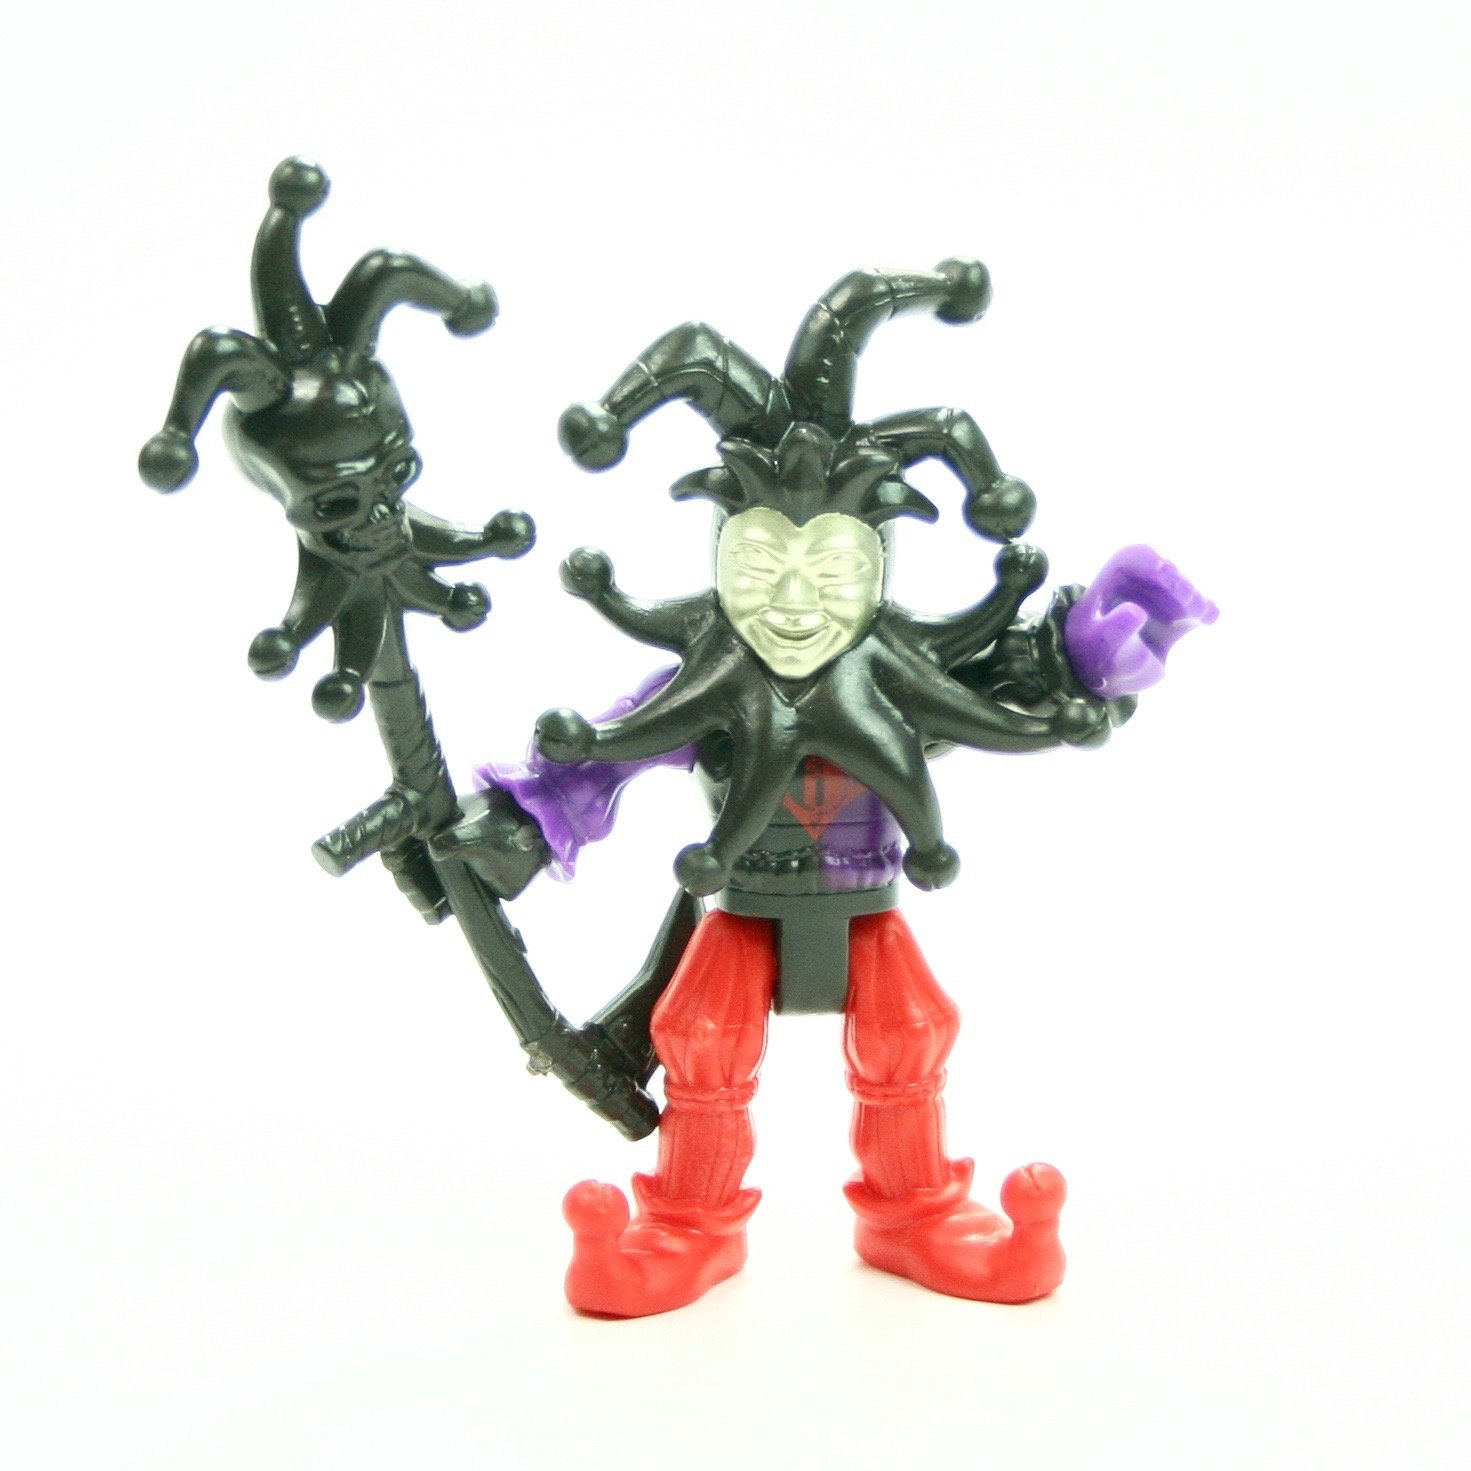 Fisher-Price Imaginext Collectible Figures Series 6 Jester